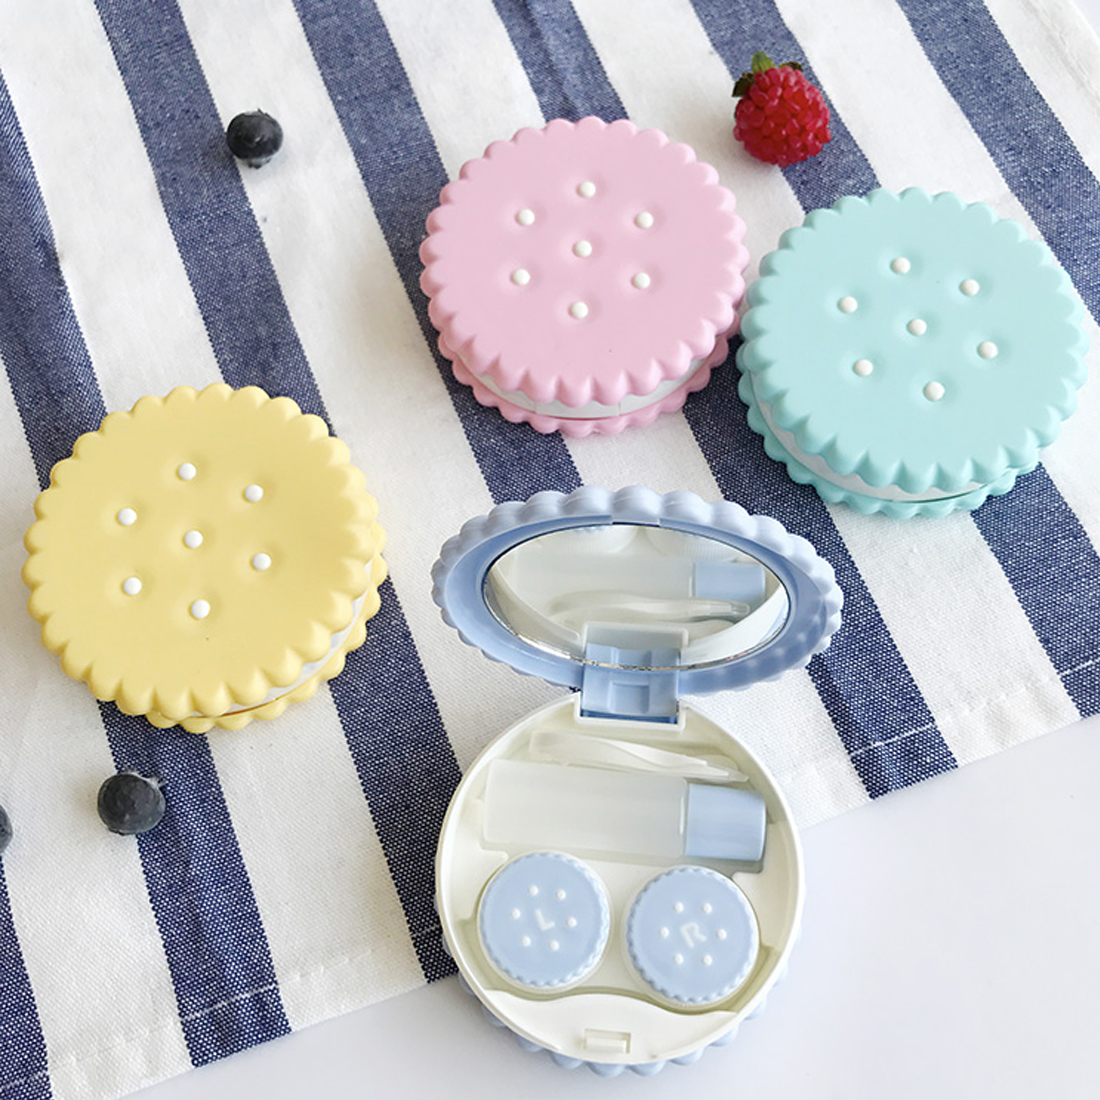 Cookies Shape Contact Lens Box Special Travel Cute Cartoon Contact Lens Portable Pocket Case Box Container Travel Kit Holder ...